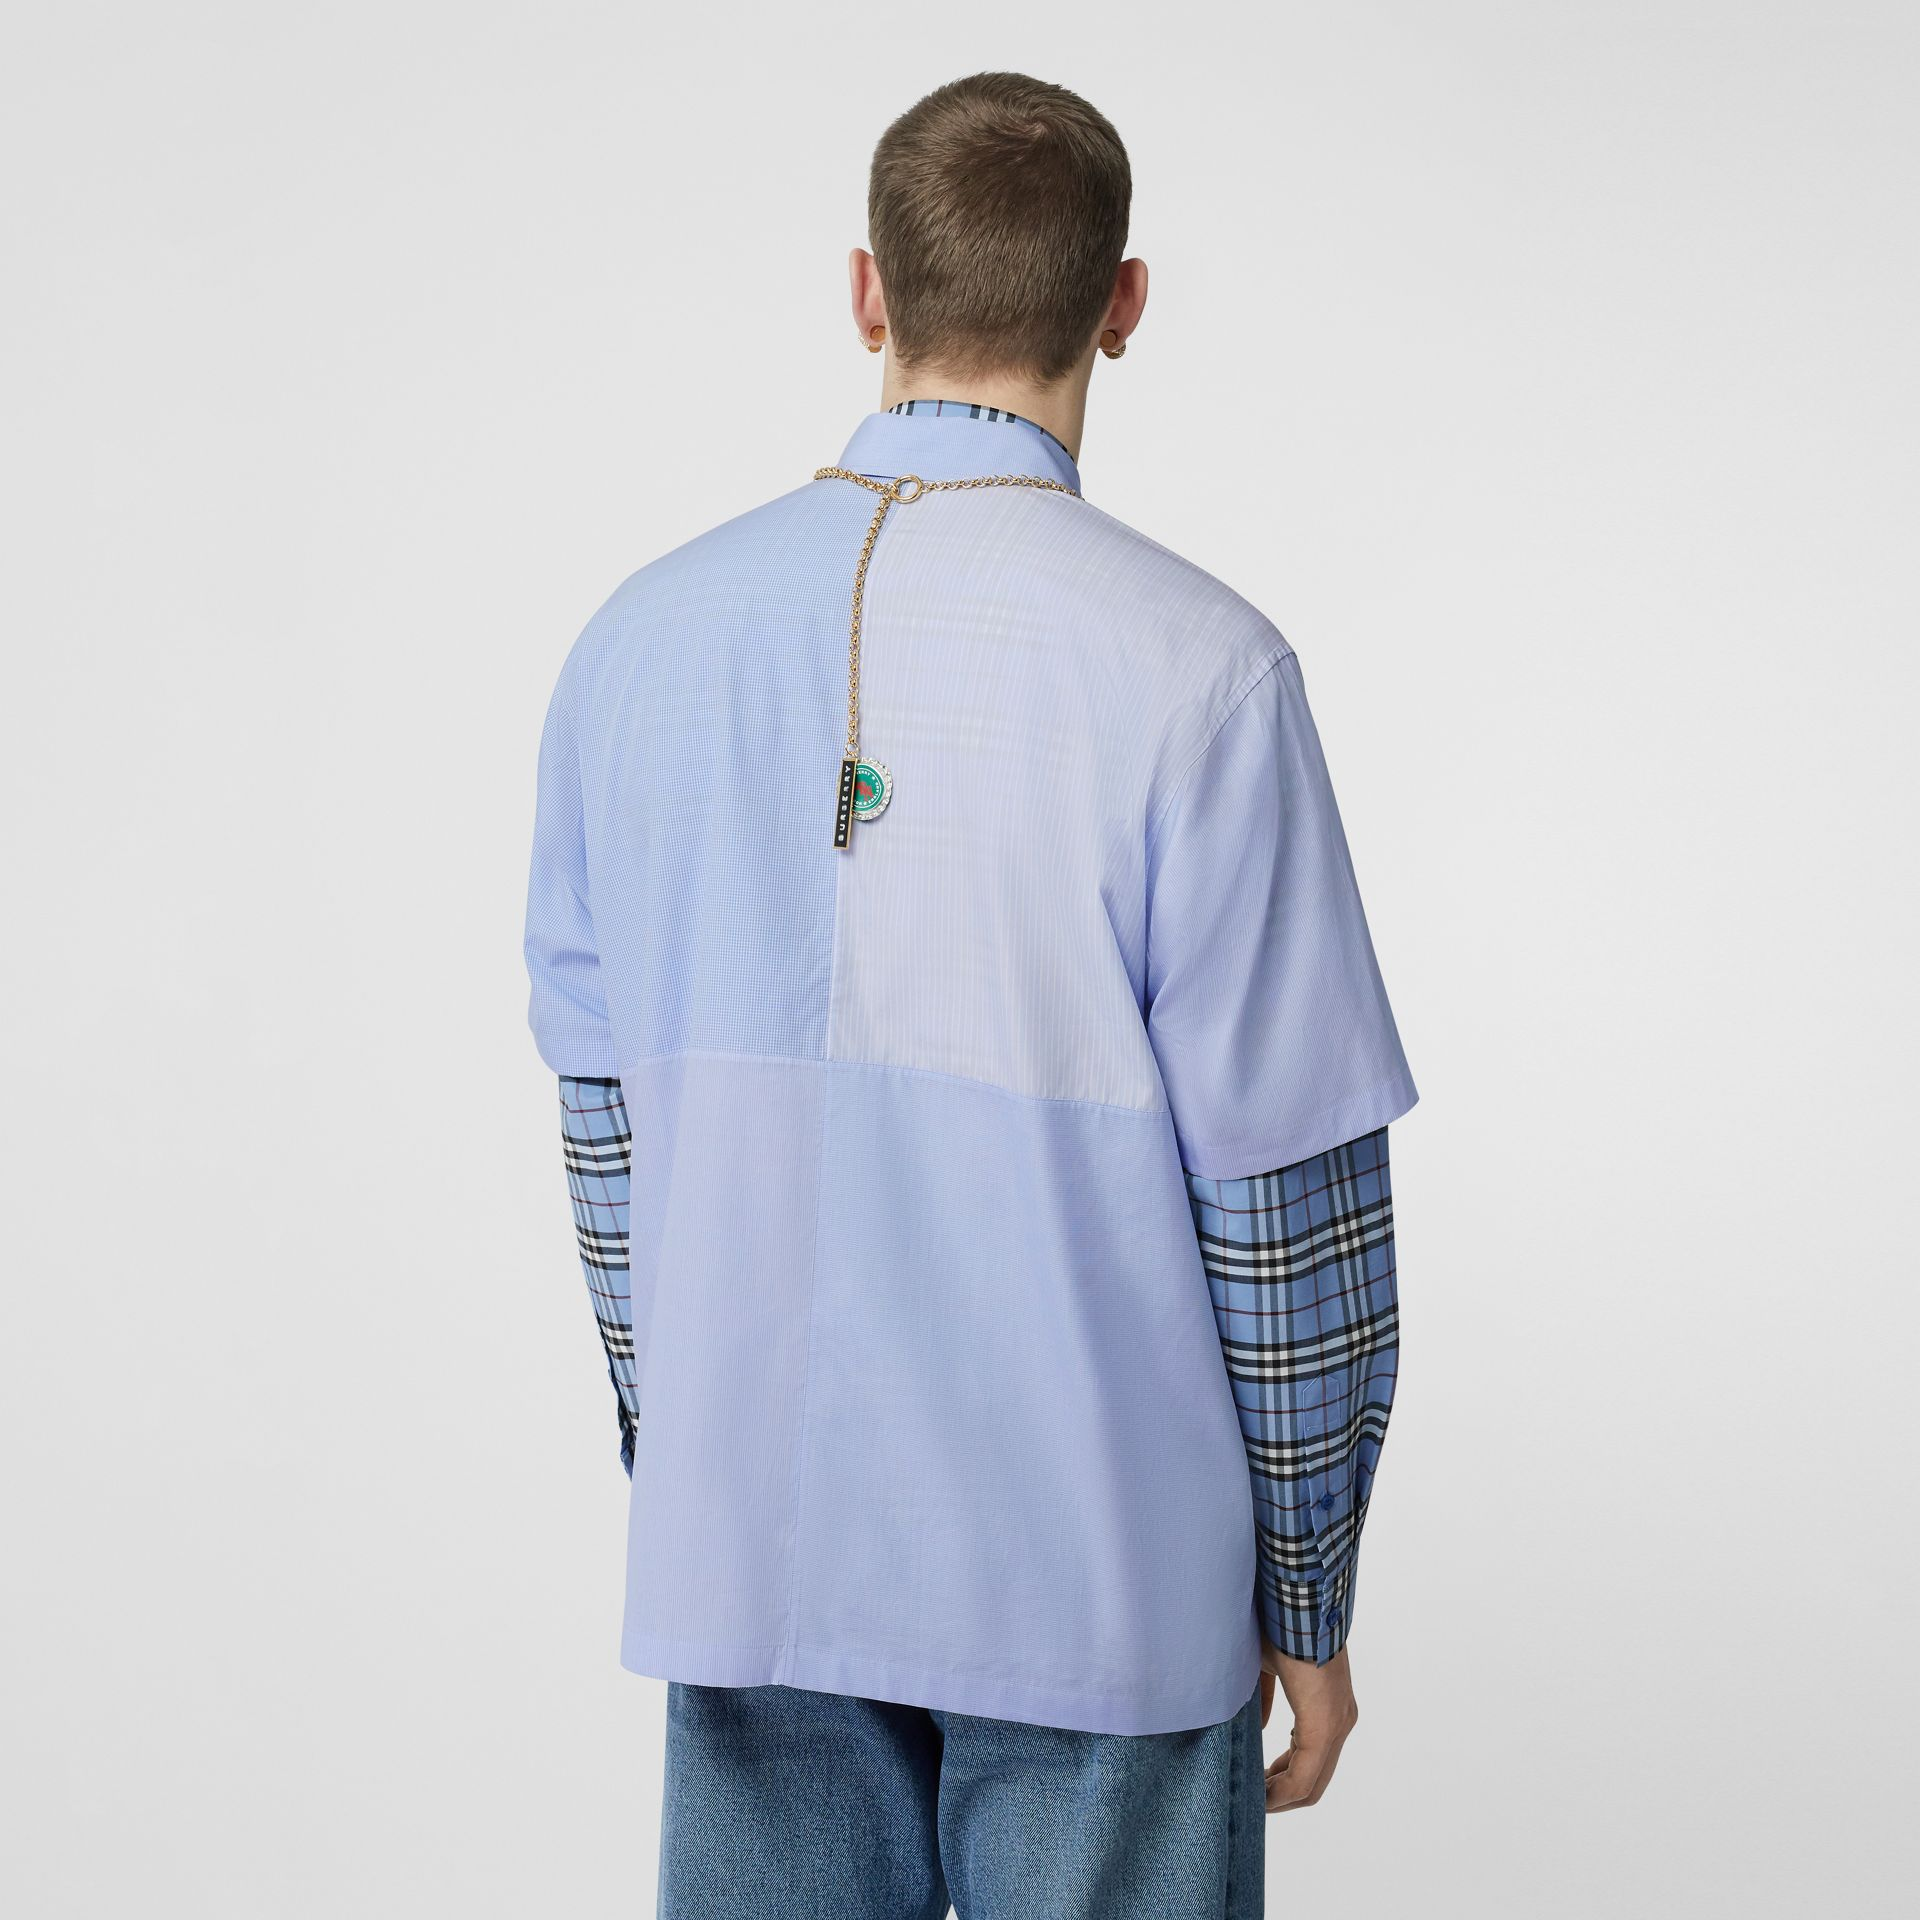 Short-sleeve Logo Graphic Patchwork Cotton Shirt in Pale Blue - Men | Burberry Hong Kong S.A.R - gallery image 2